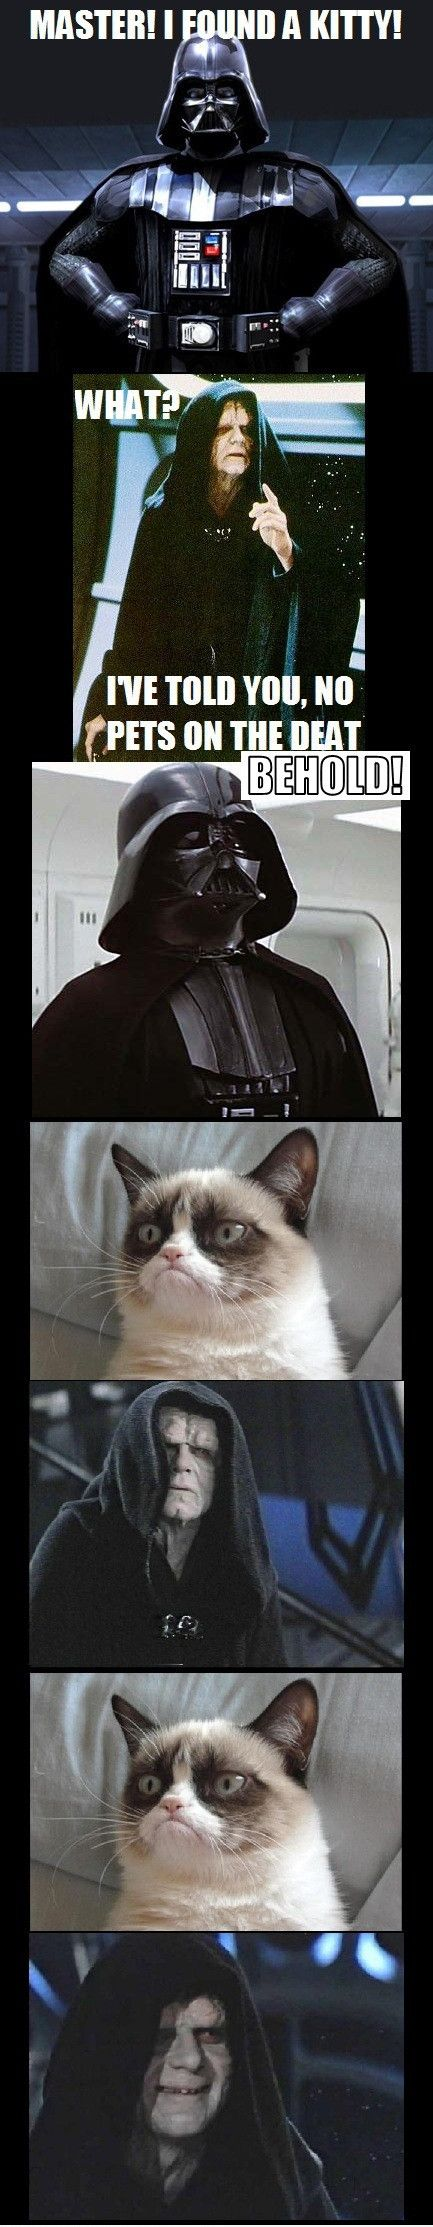 Star Wars emperor grumpy cat humor funny darth vader